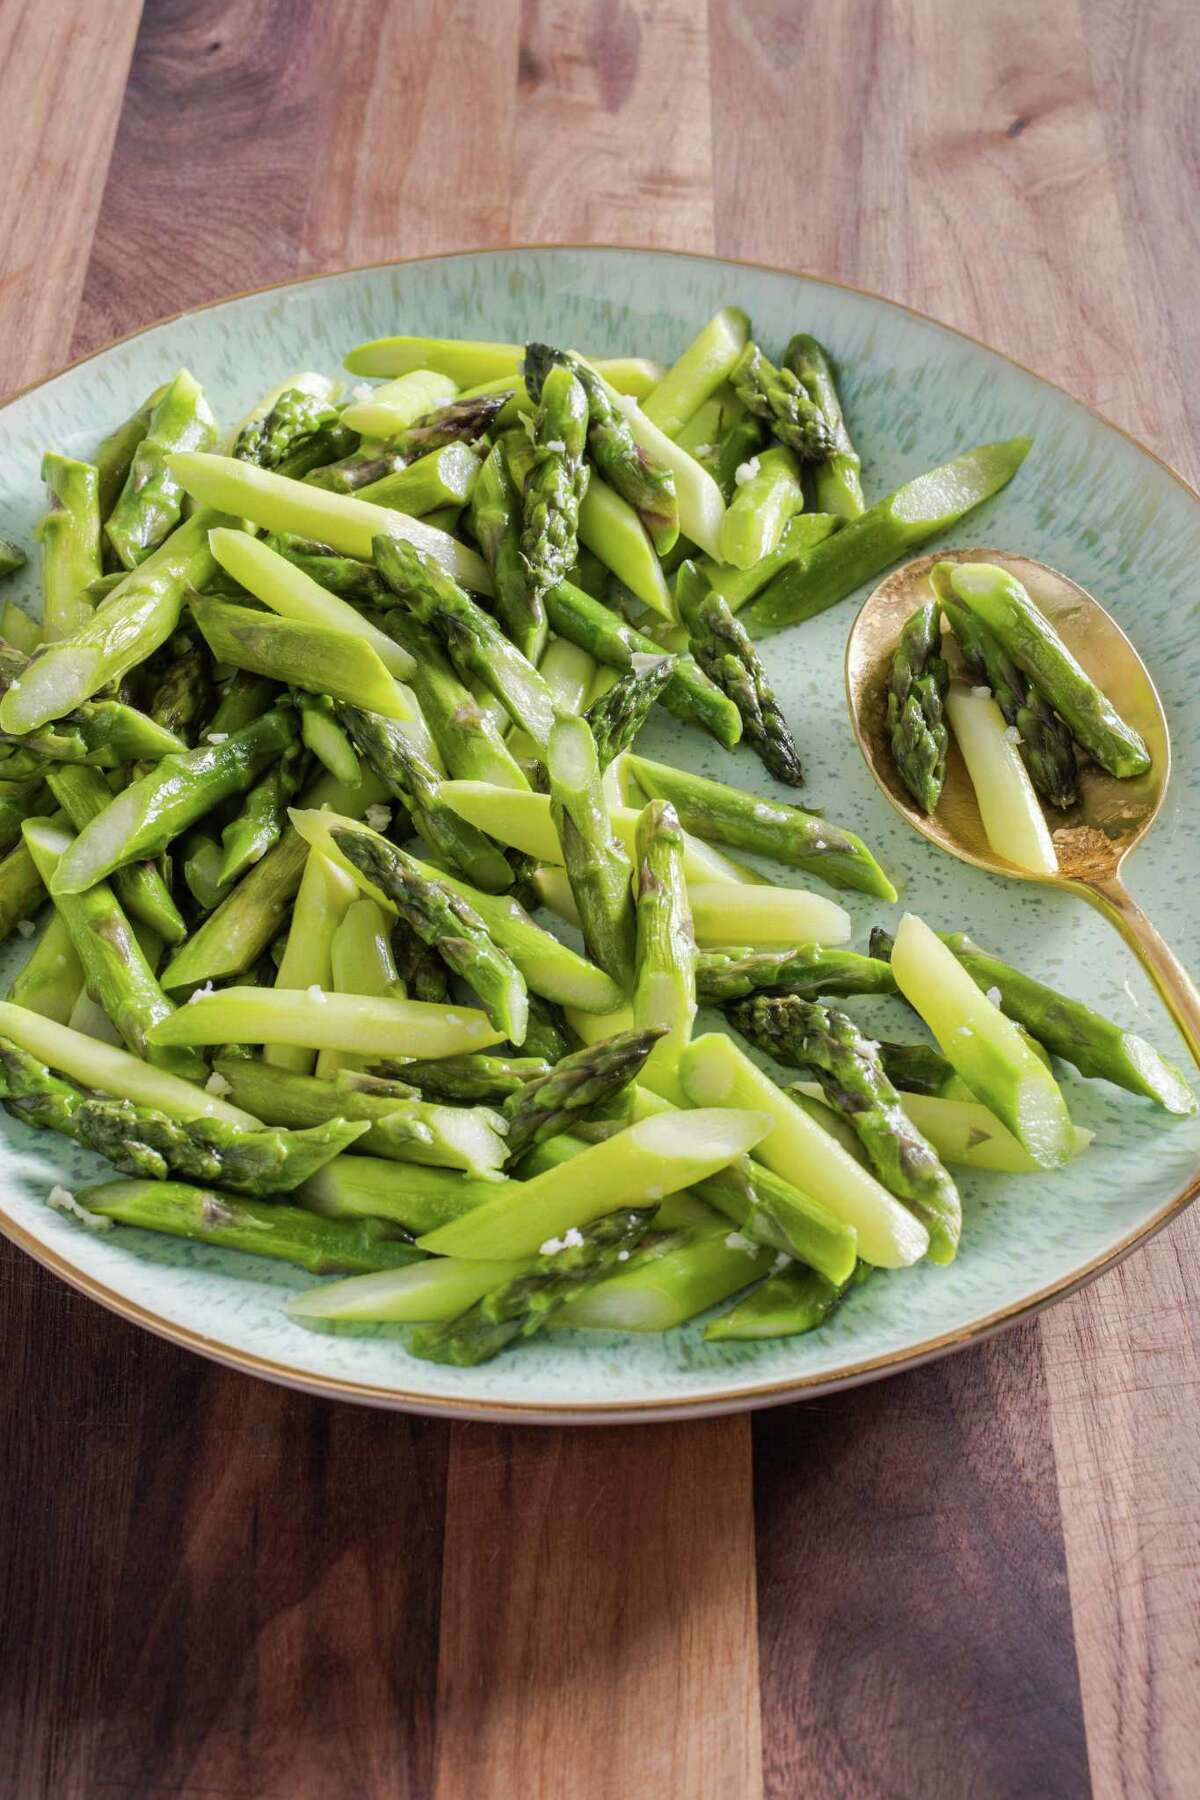 Simple pan-cooked asparagus is flavored with only garlic, butter and salt.